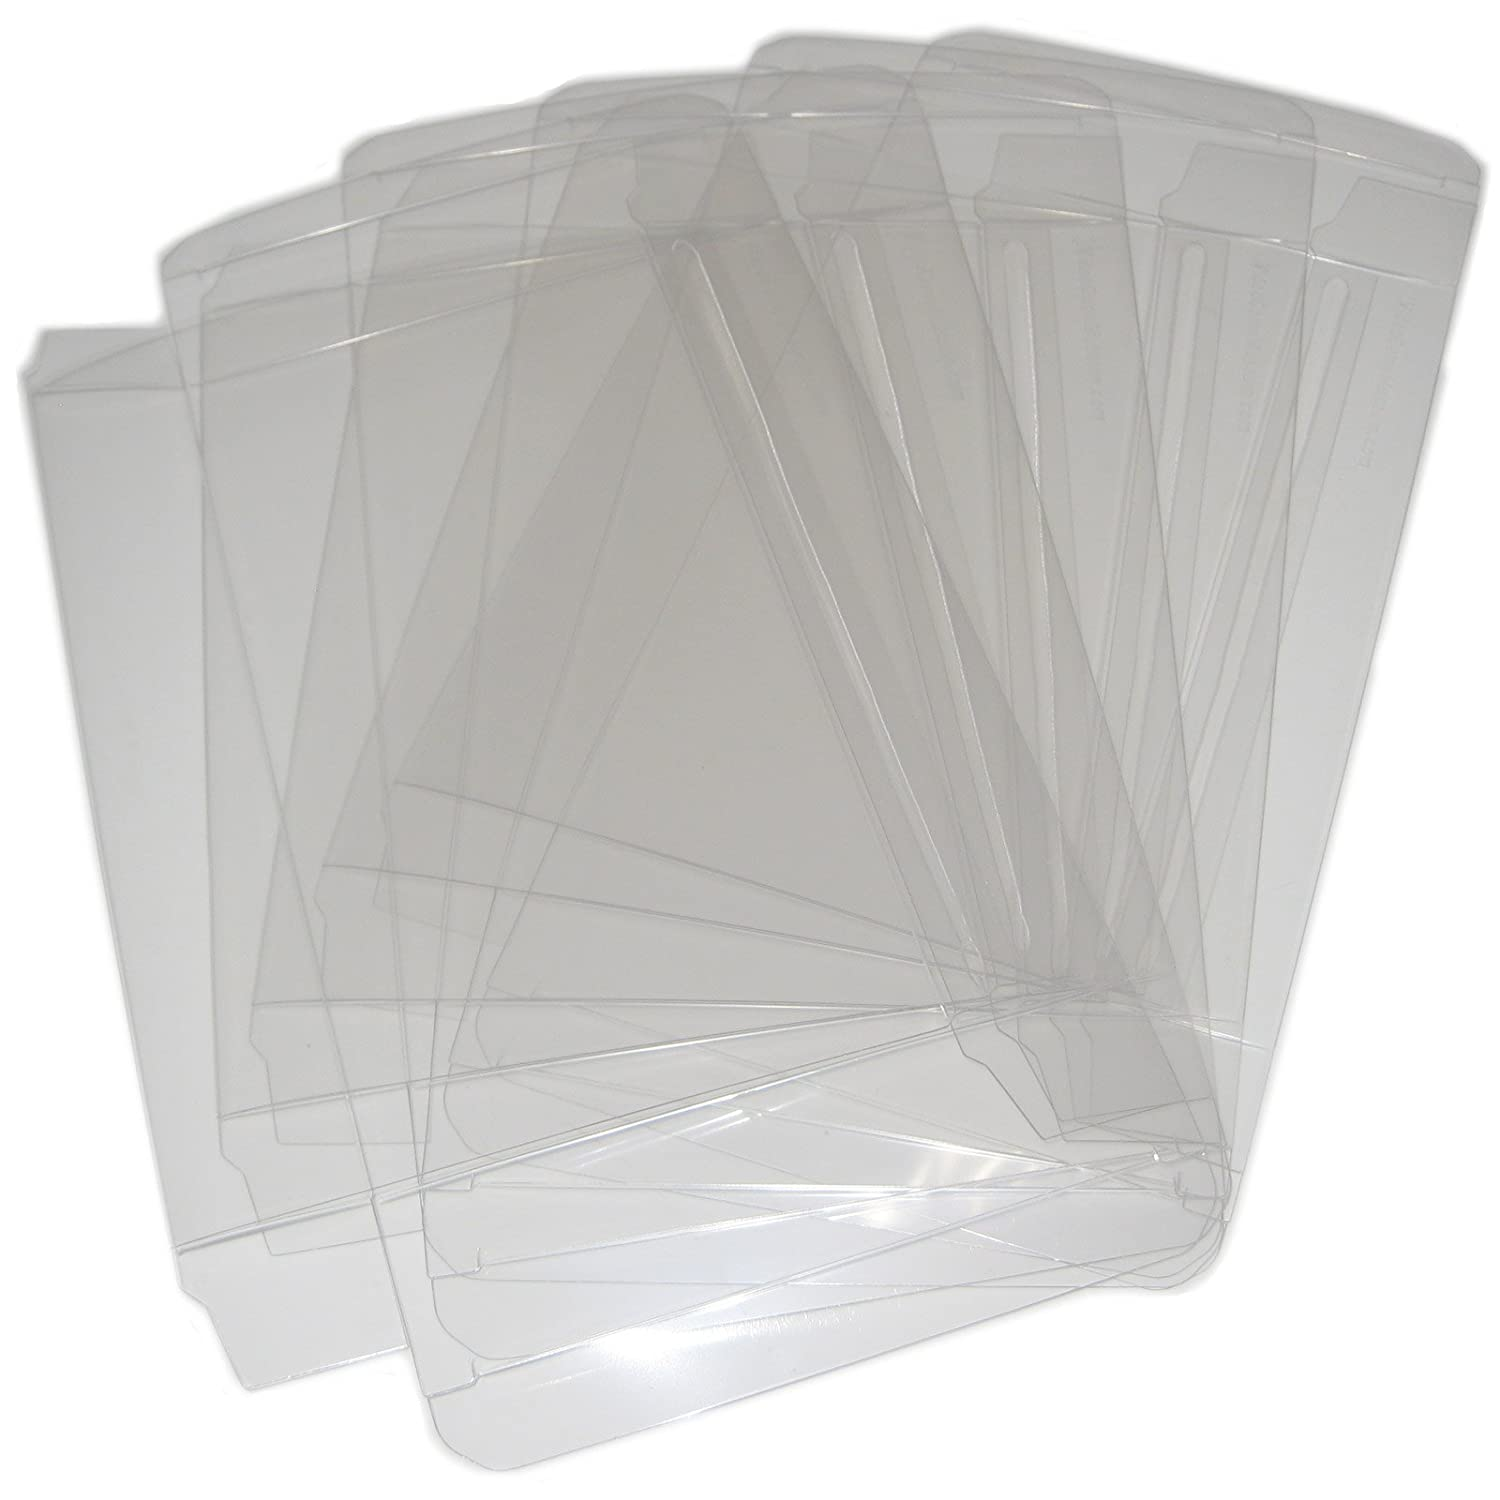 25 VGM Custom Clear Plastic Box Protectors for SNES & N64 Boxed Games